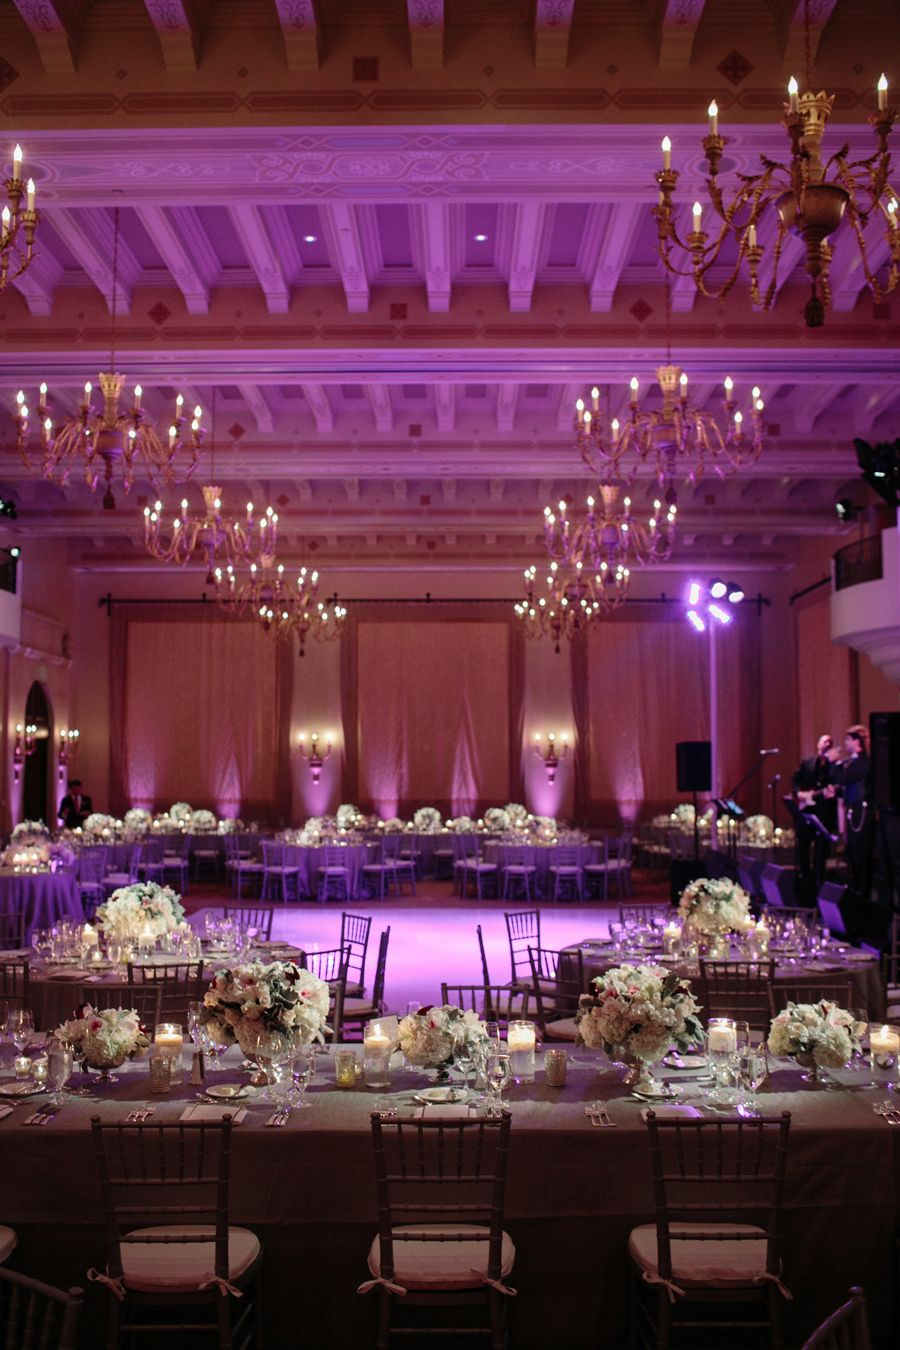 Elegant ballroom wedding montage ballroom wedding for Ball room decoration